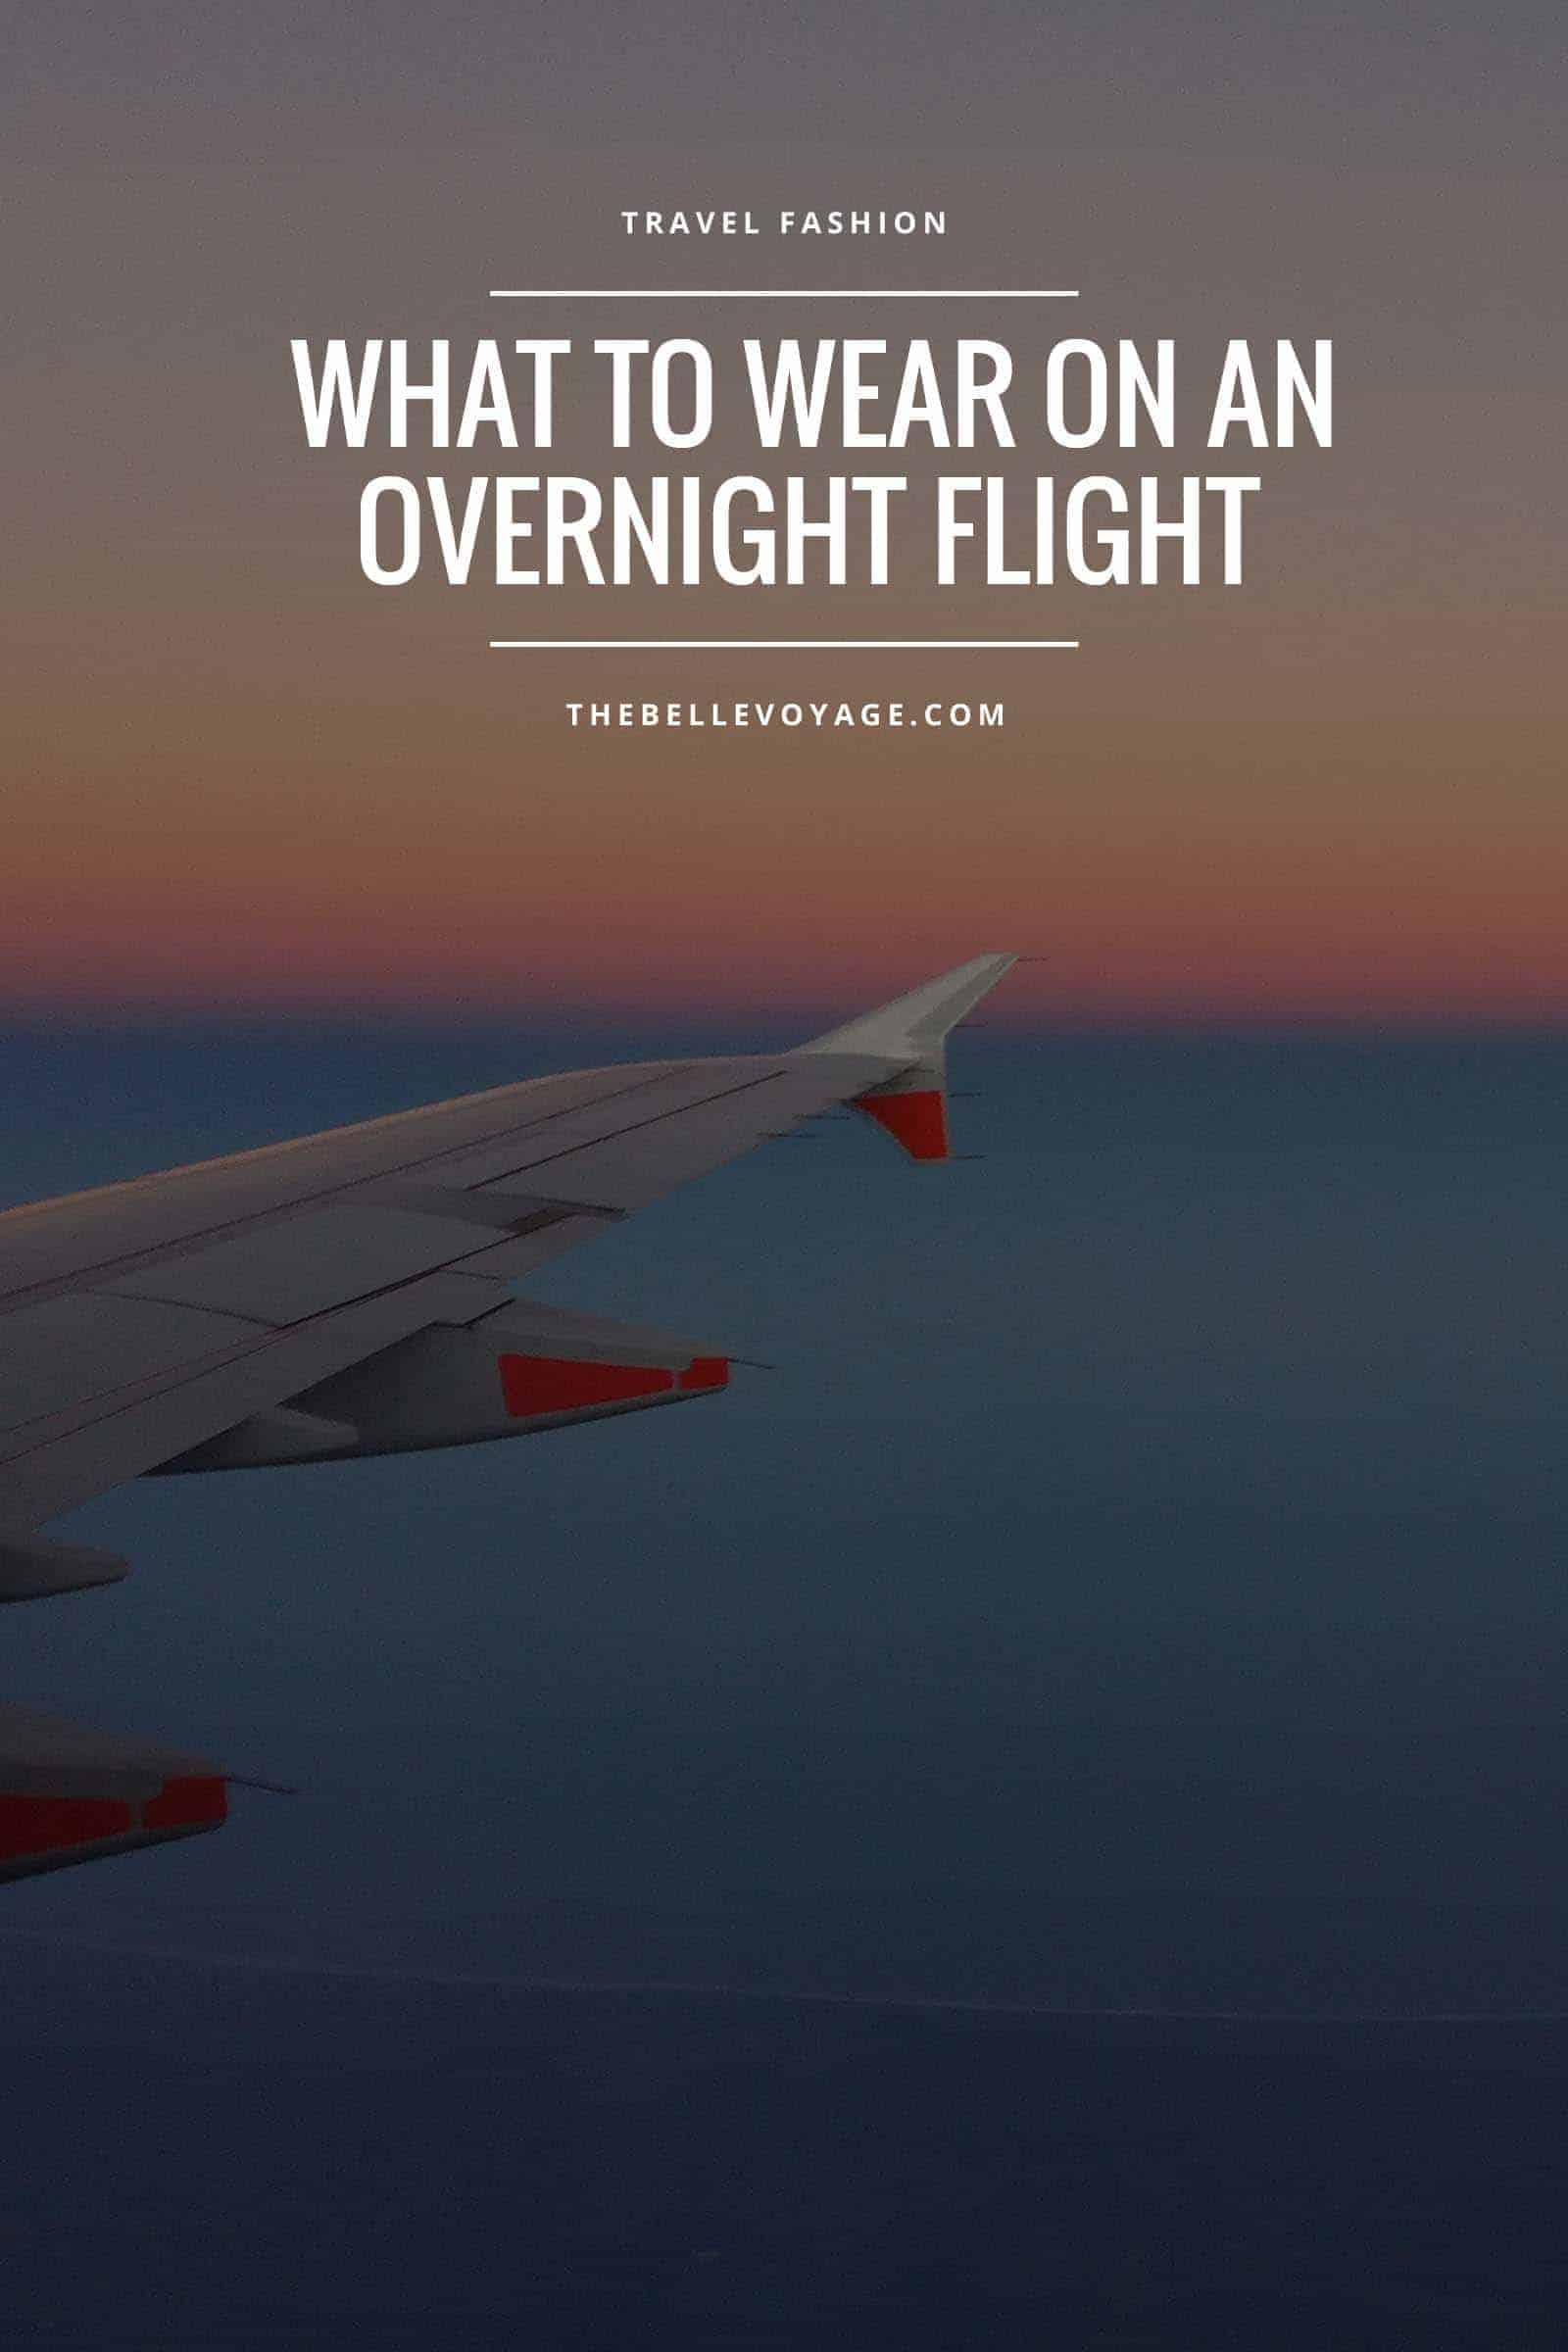 overnight flight outfit, what to wear, tips, essentials